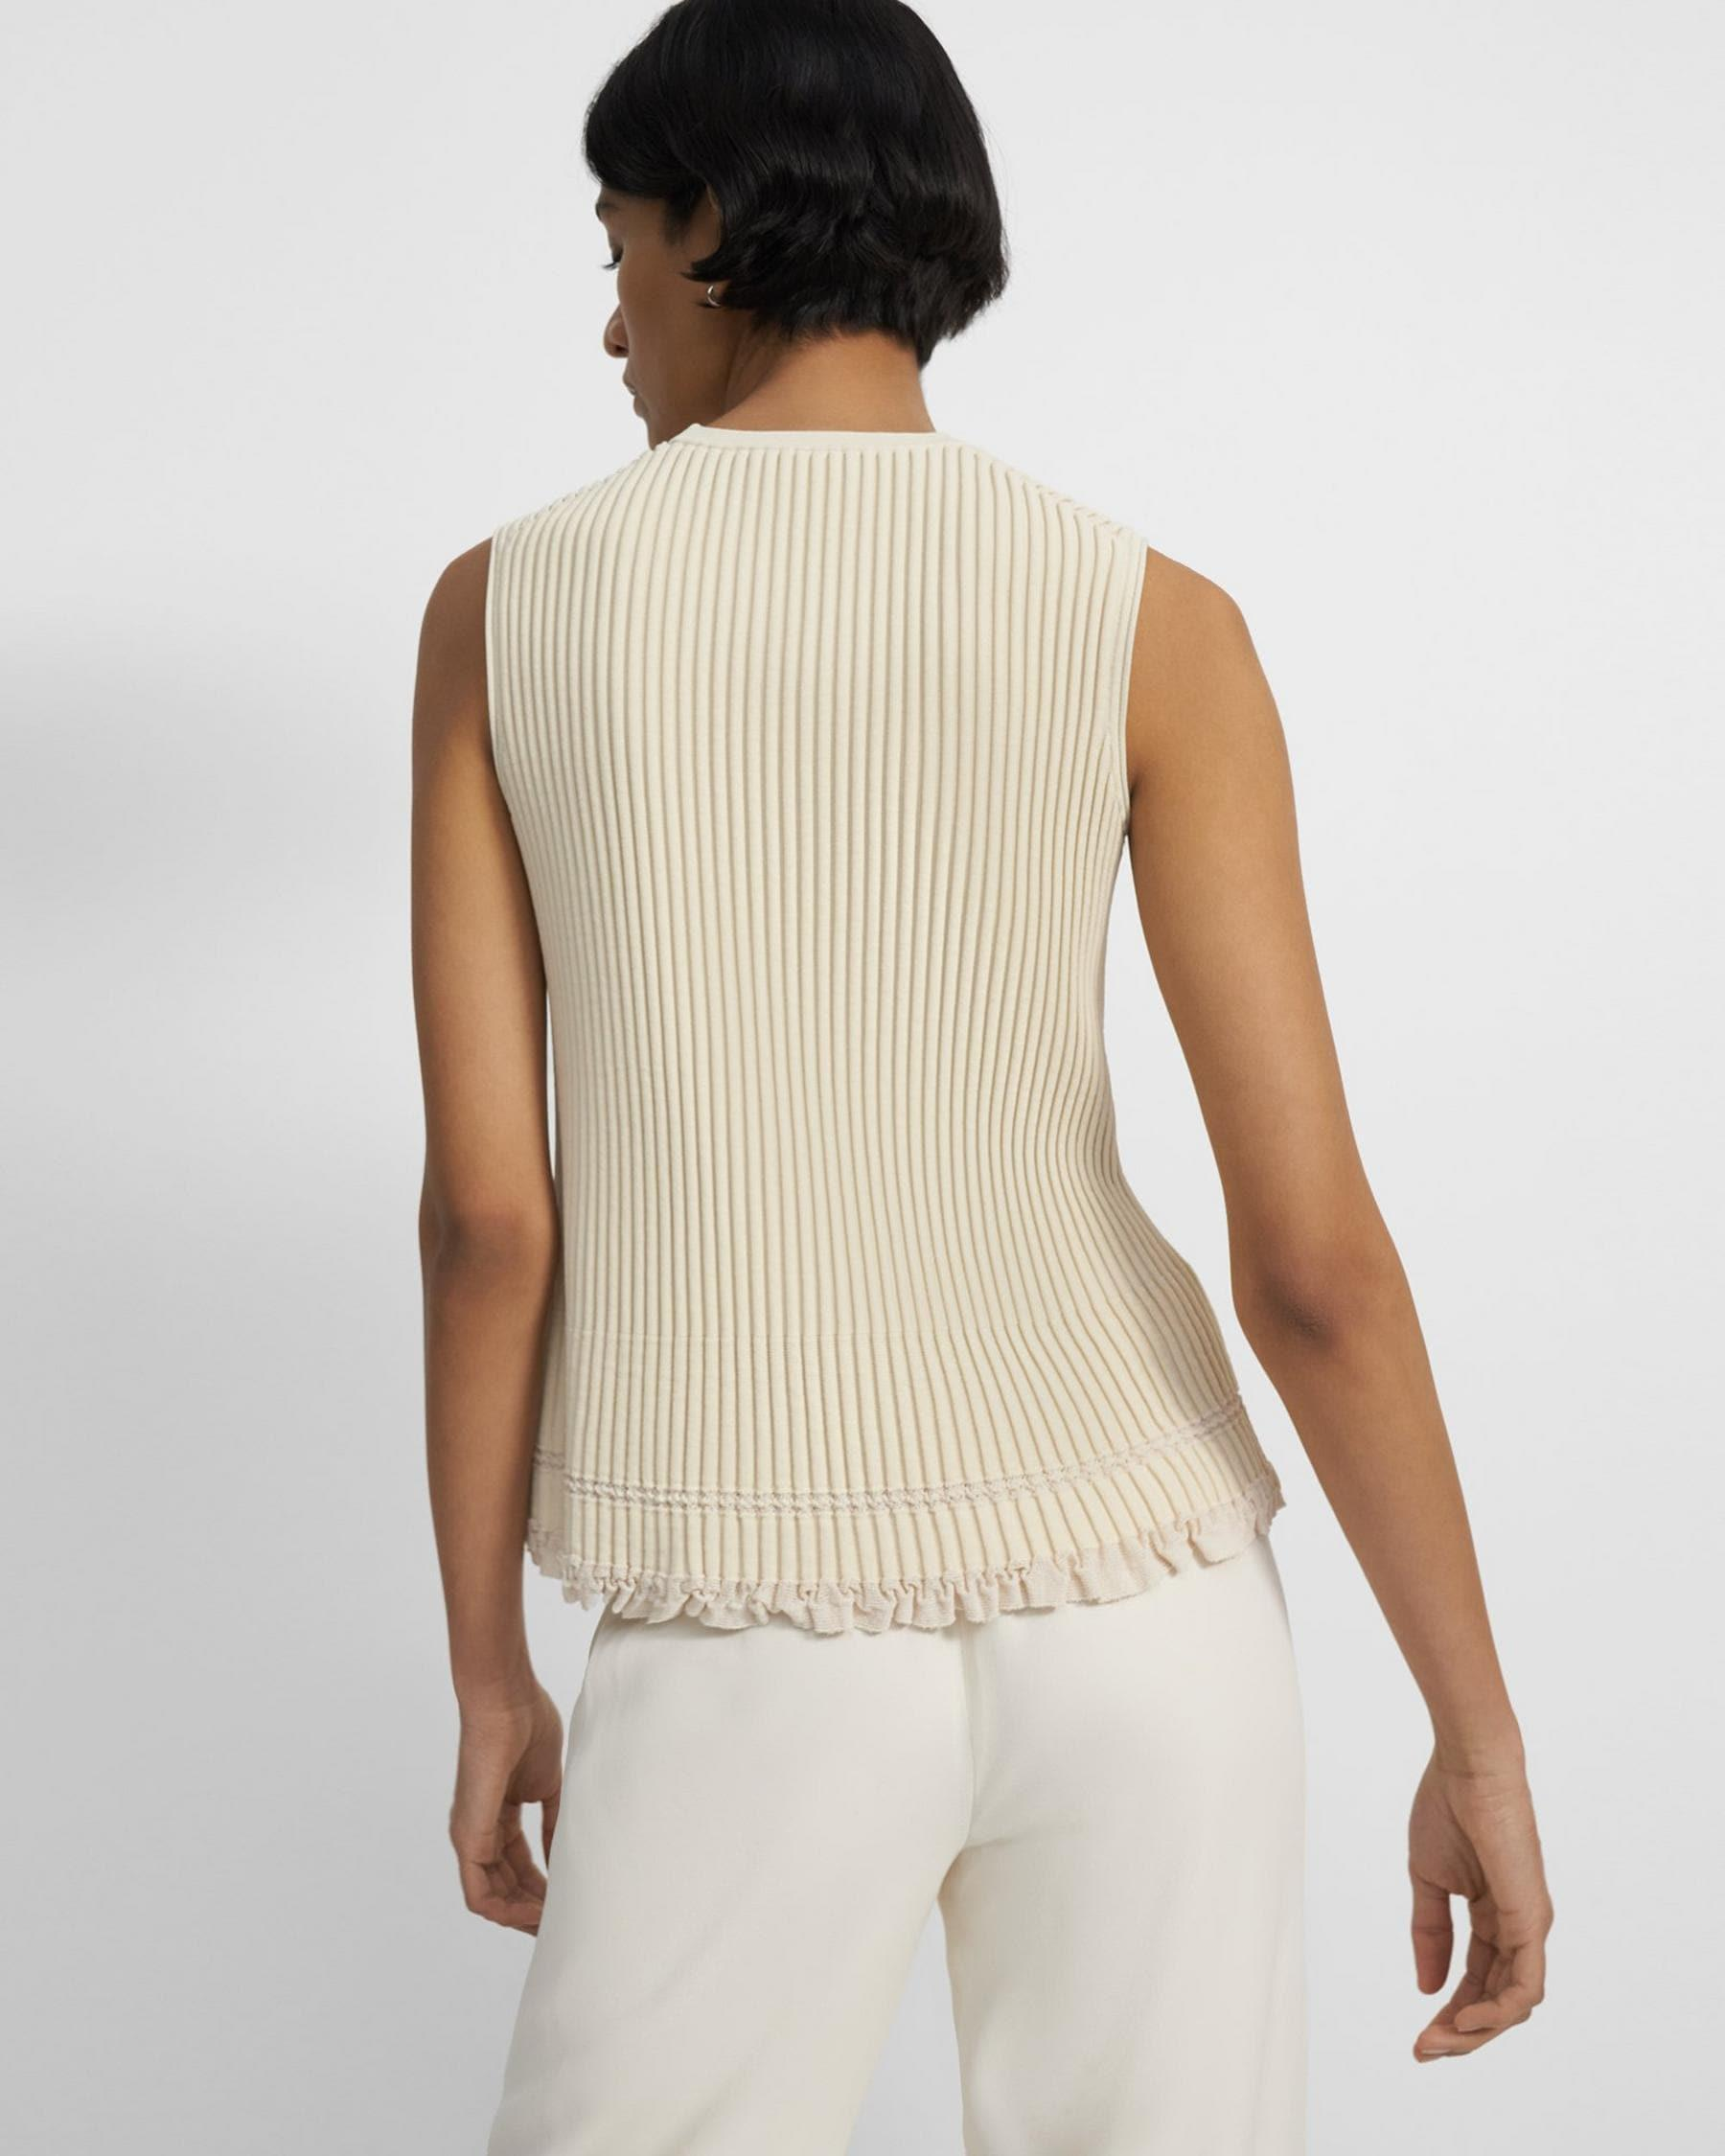 Shell Top in Eco Knit 2